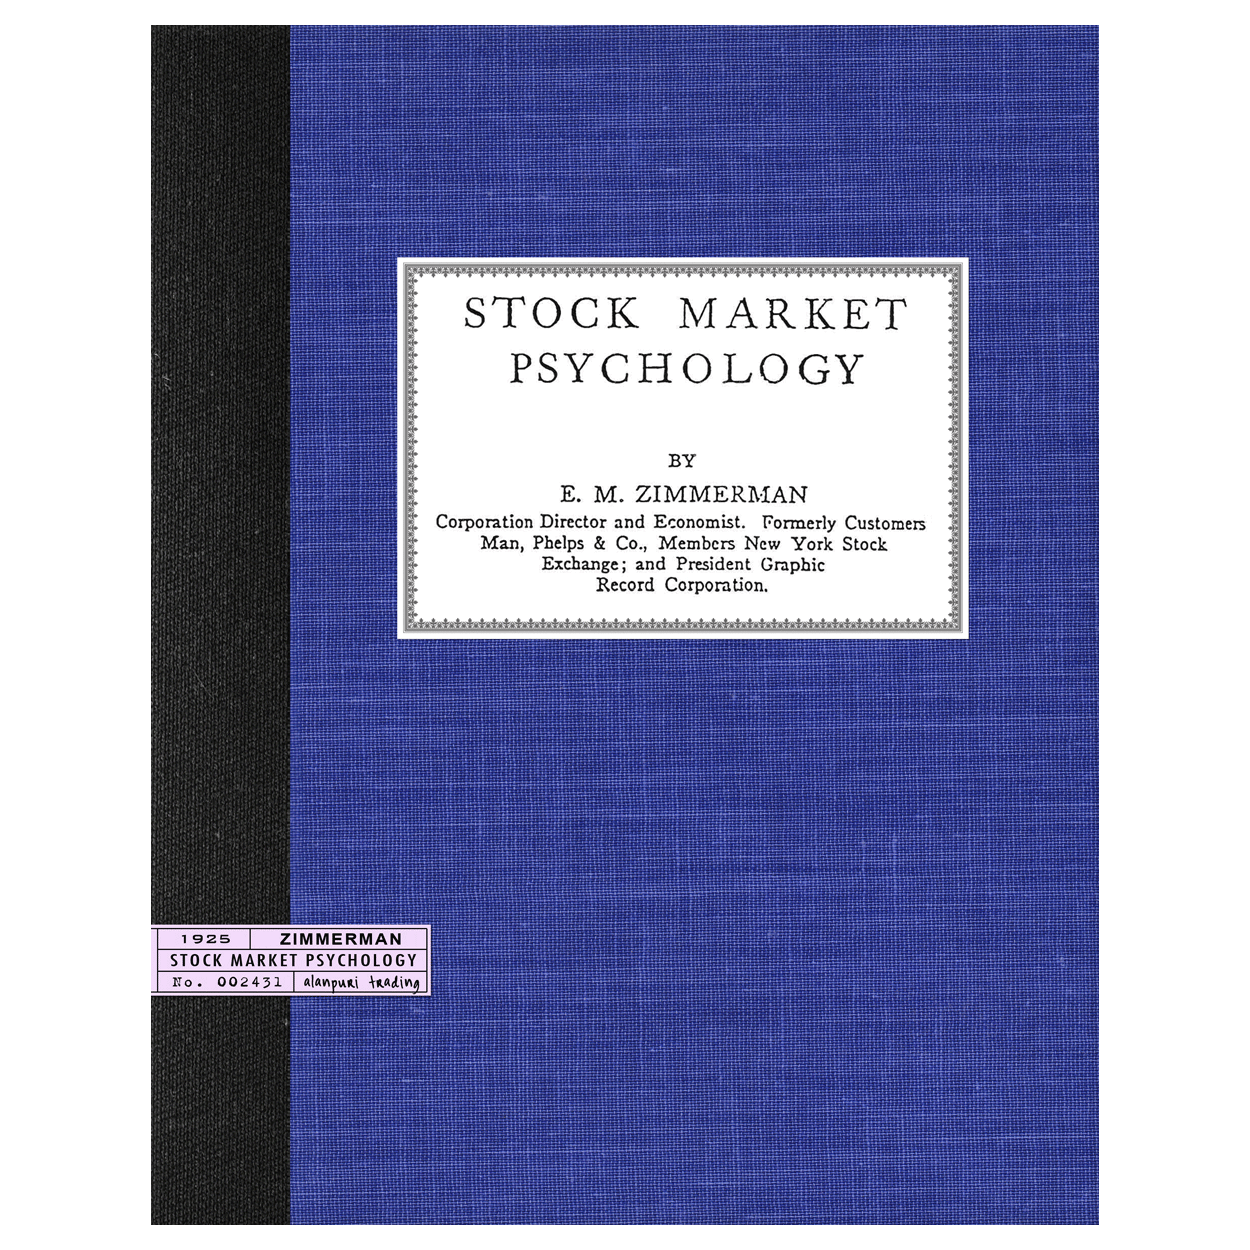 Stock Market Psychology (1925) by E.M. Zimmerman